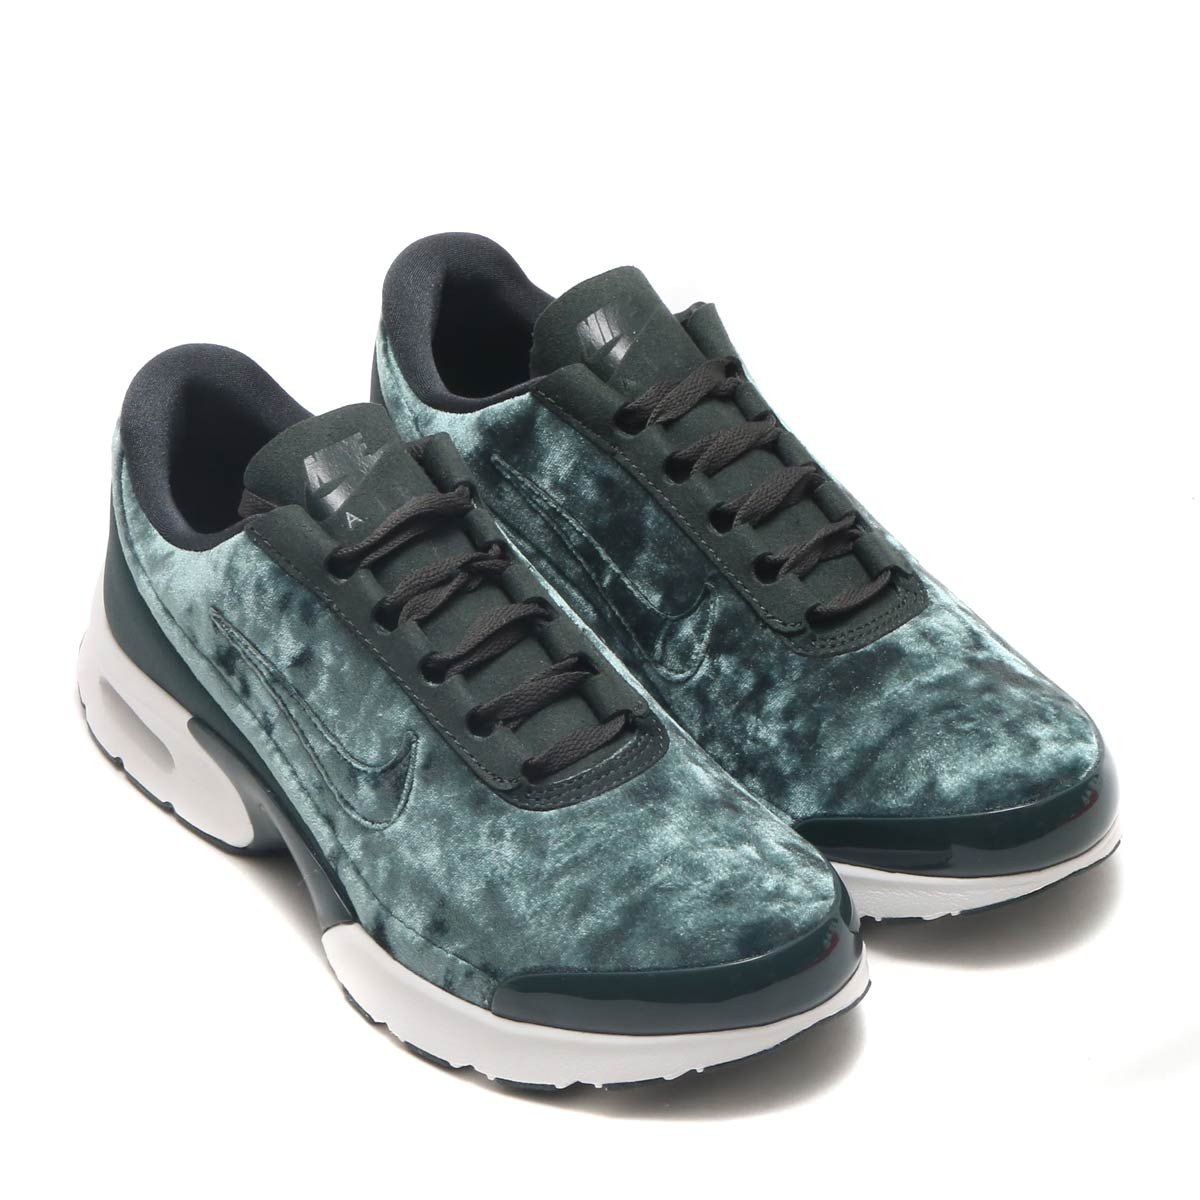 Nike Air Max Jewell Premium W Outdoor Green/ Outdoor Green Precio Barato Barato SamX6jeoCr